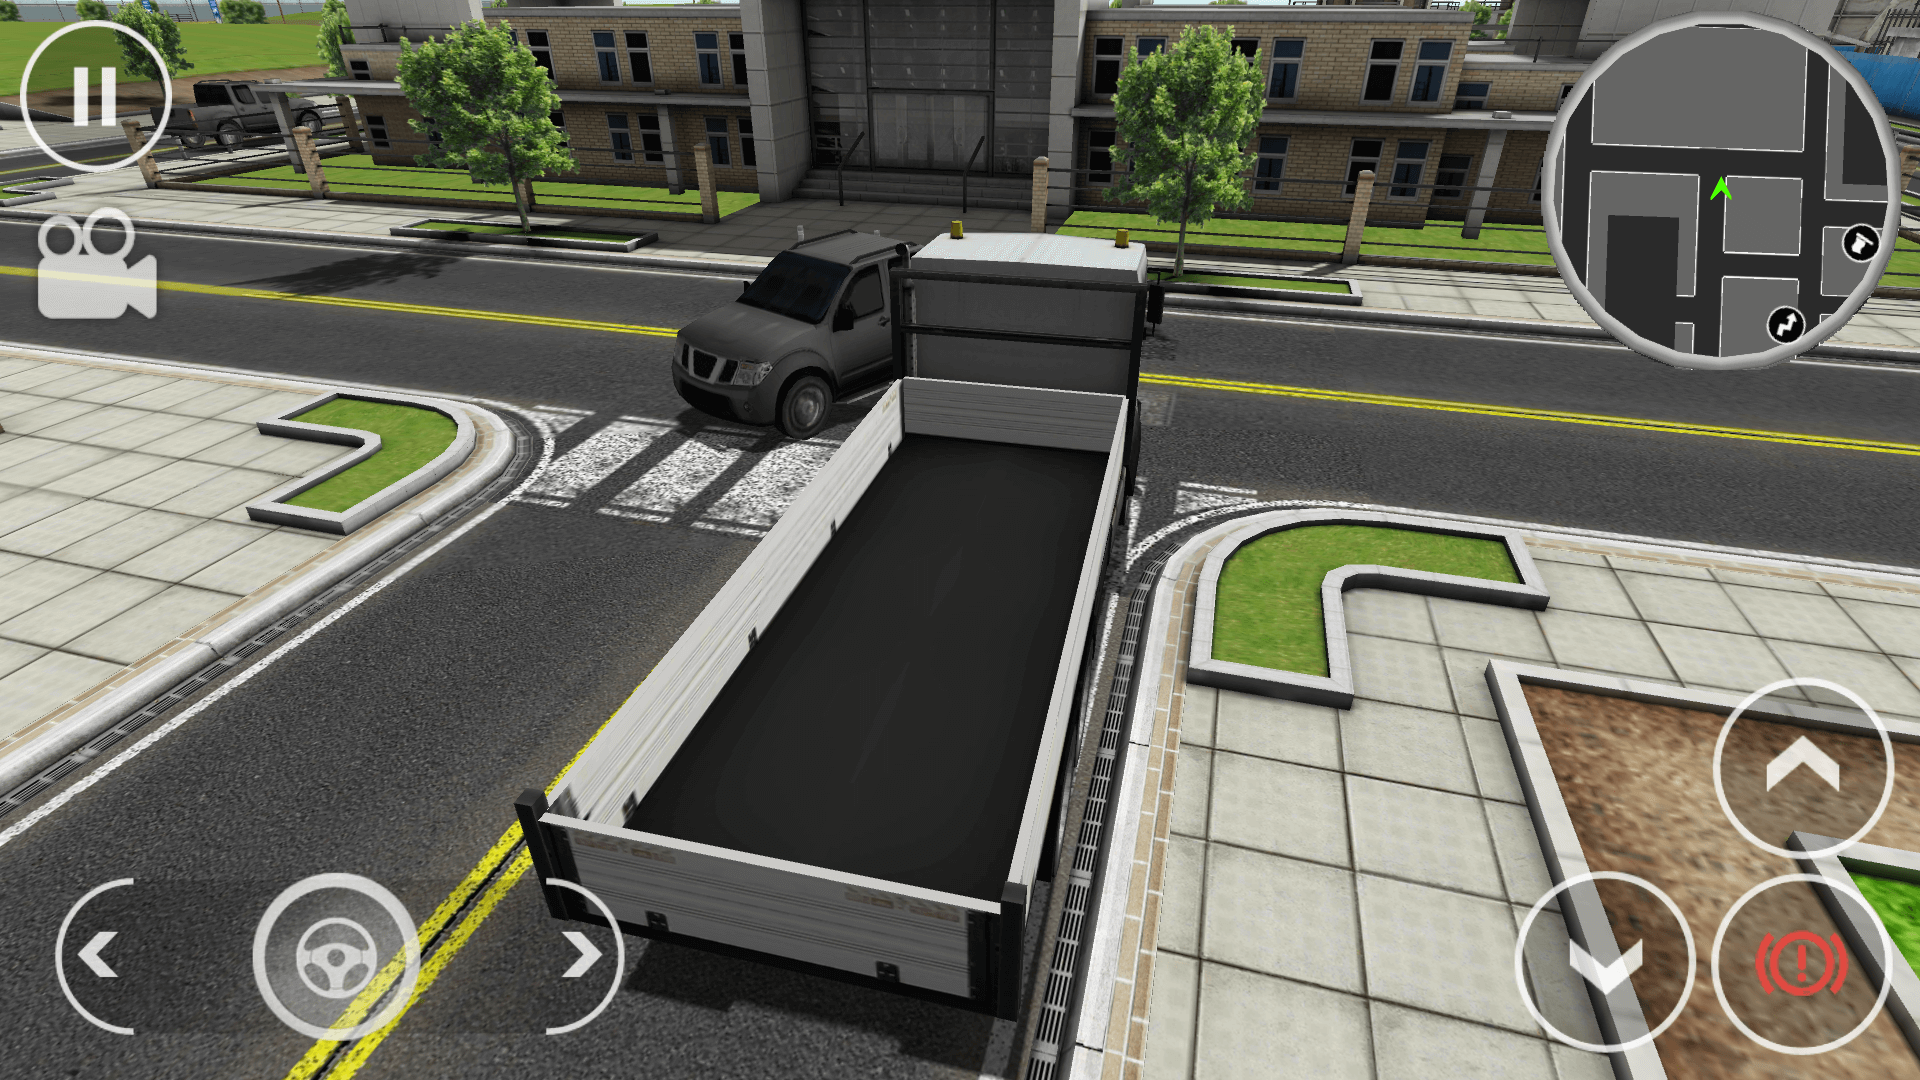 Drive Simulator suv entering parking